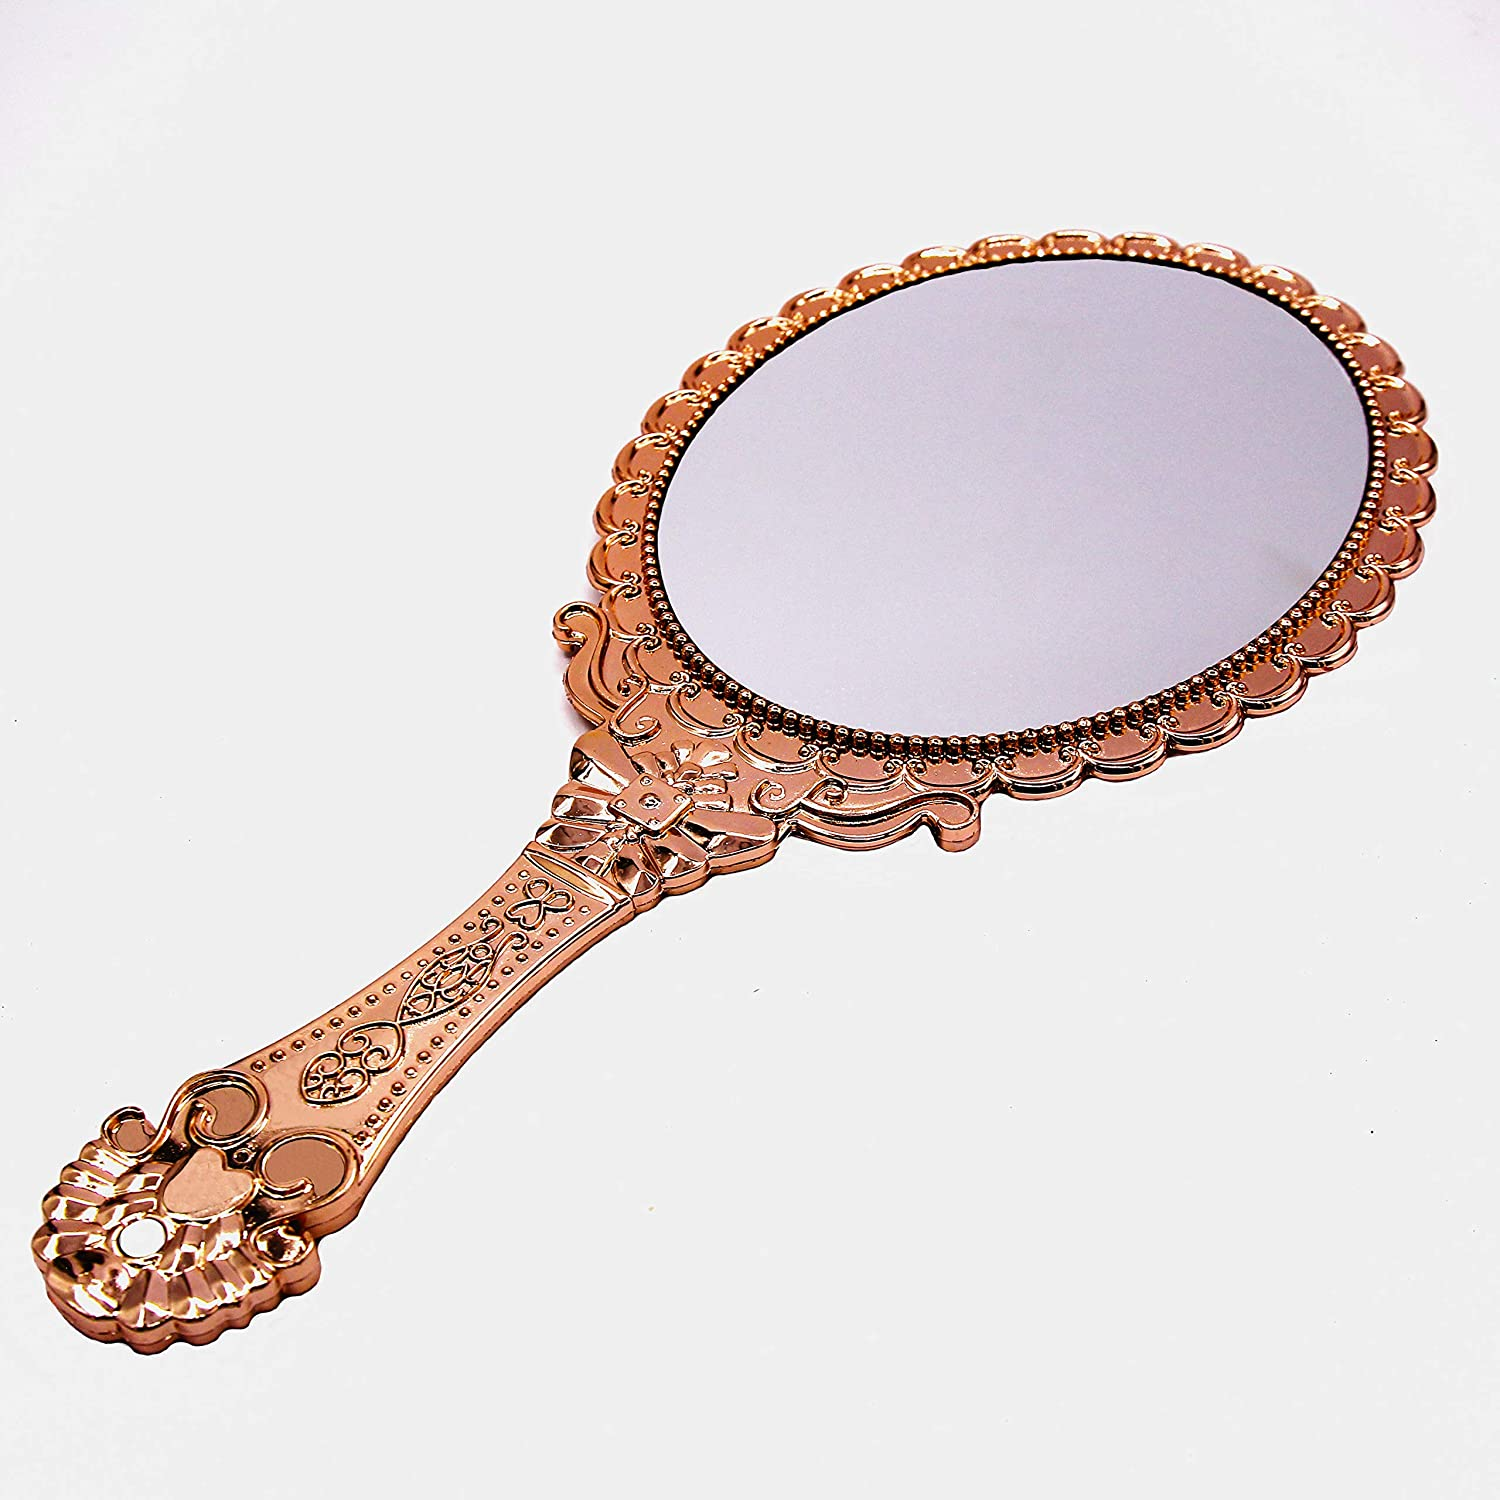 XPXKJ Hand Mirror Vintage Handheld Mirror with Handle Vanity Makeup Mirror Travel Mirrors (oval, Rose Gold)